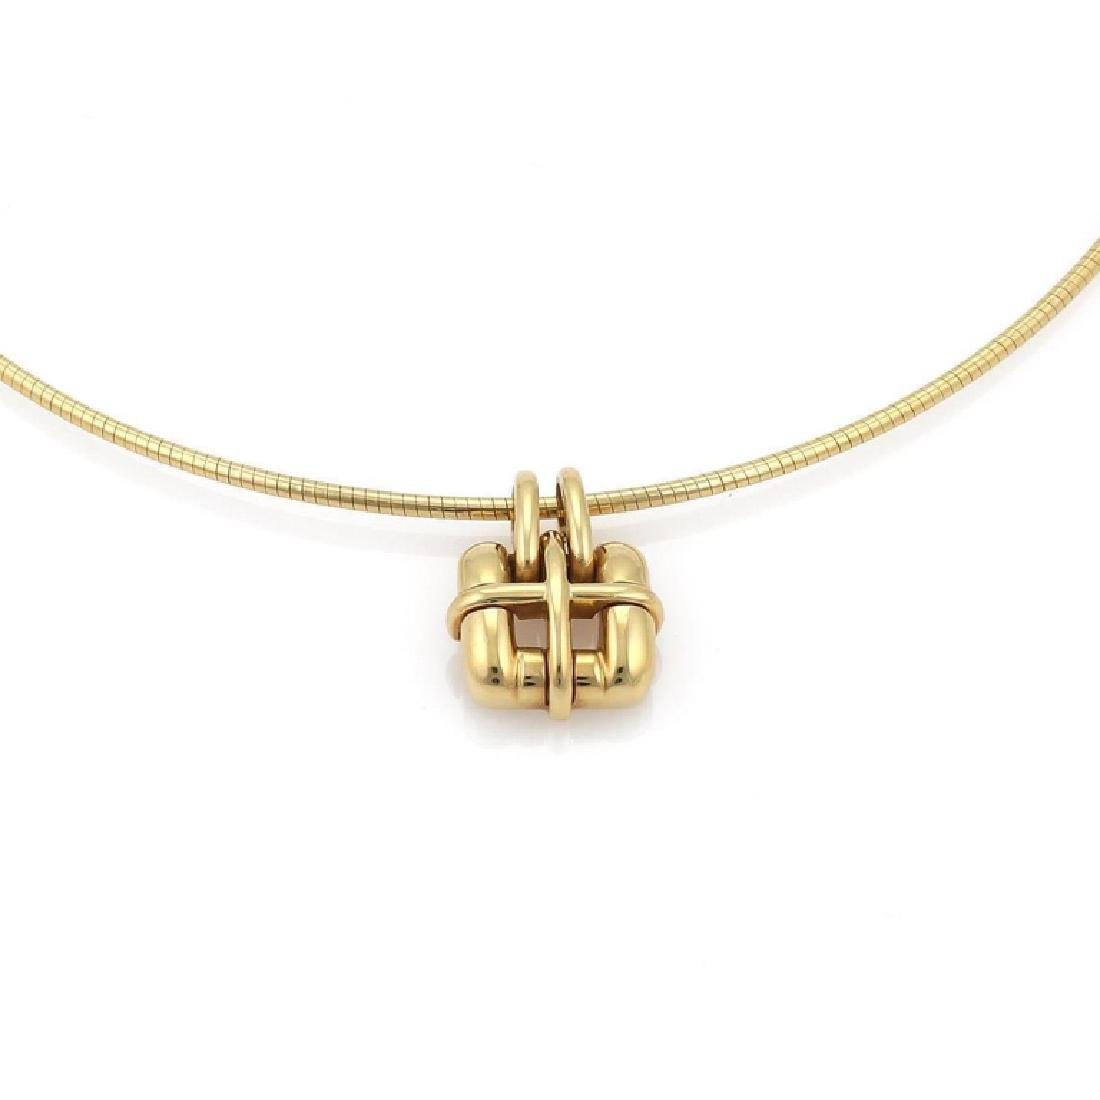 Tiffany & Co 18k Gold Pendant Snake Cable Necklace